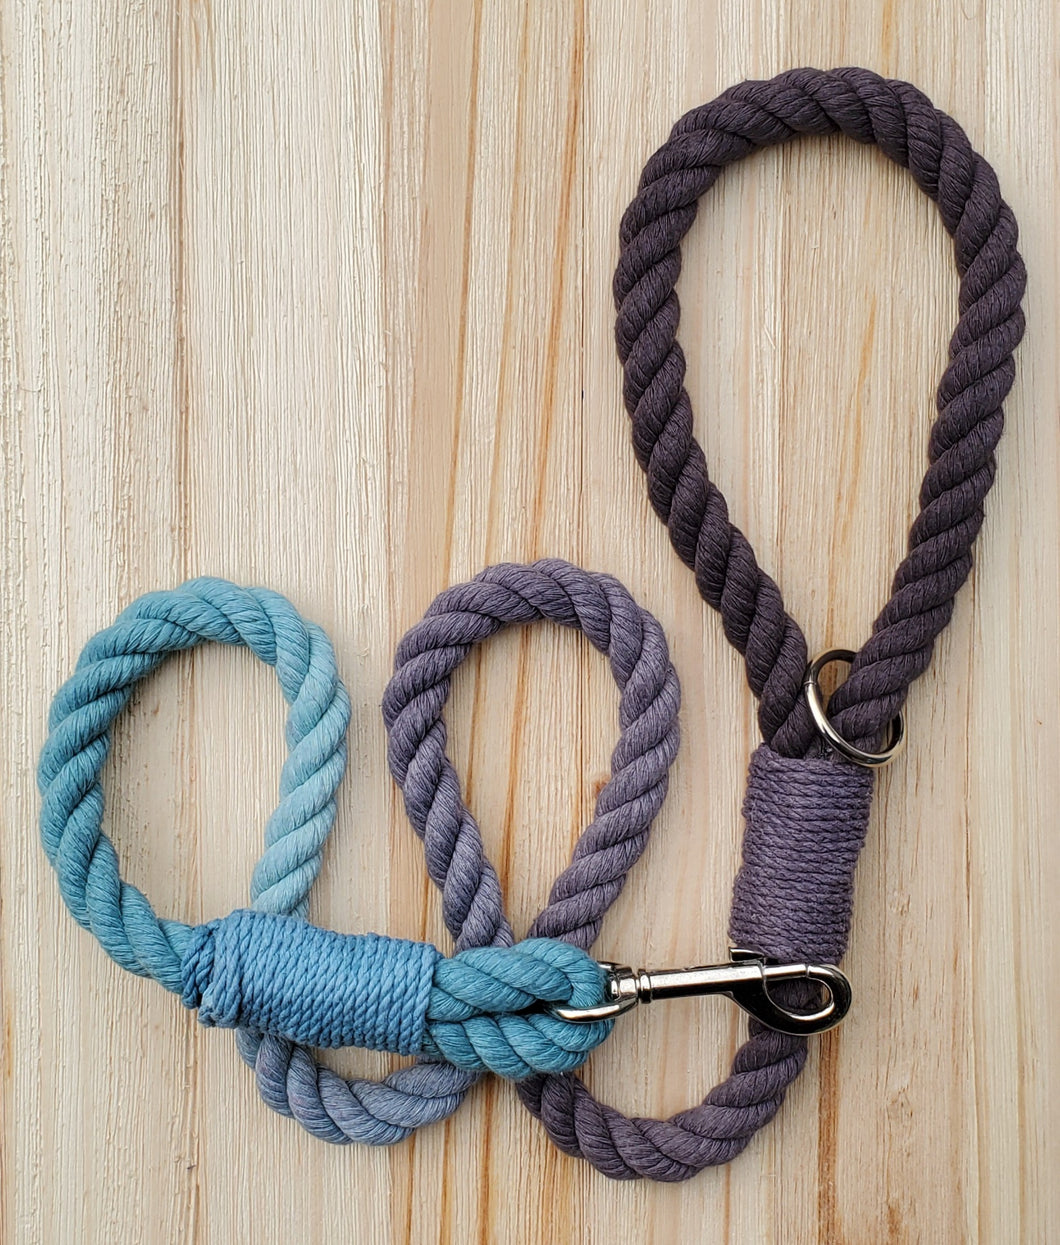 Onyx Sky Rope Leash